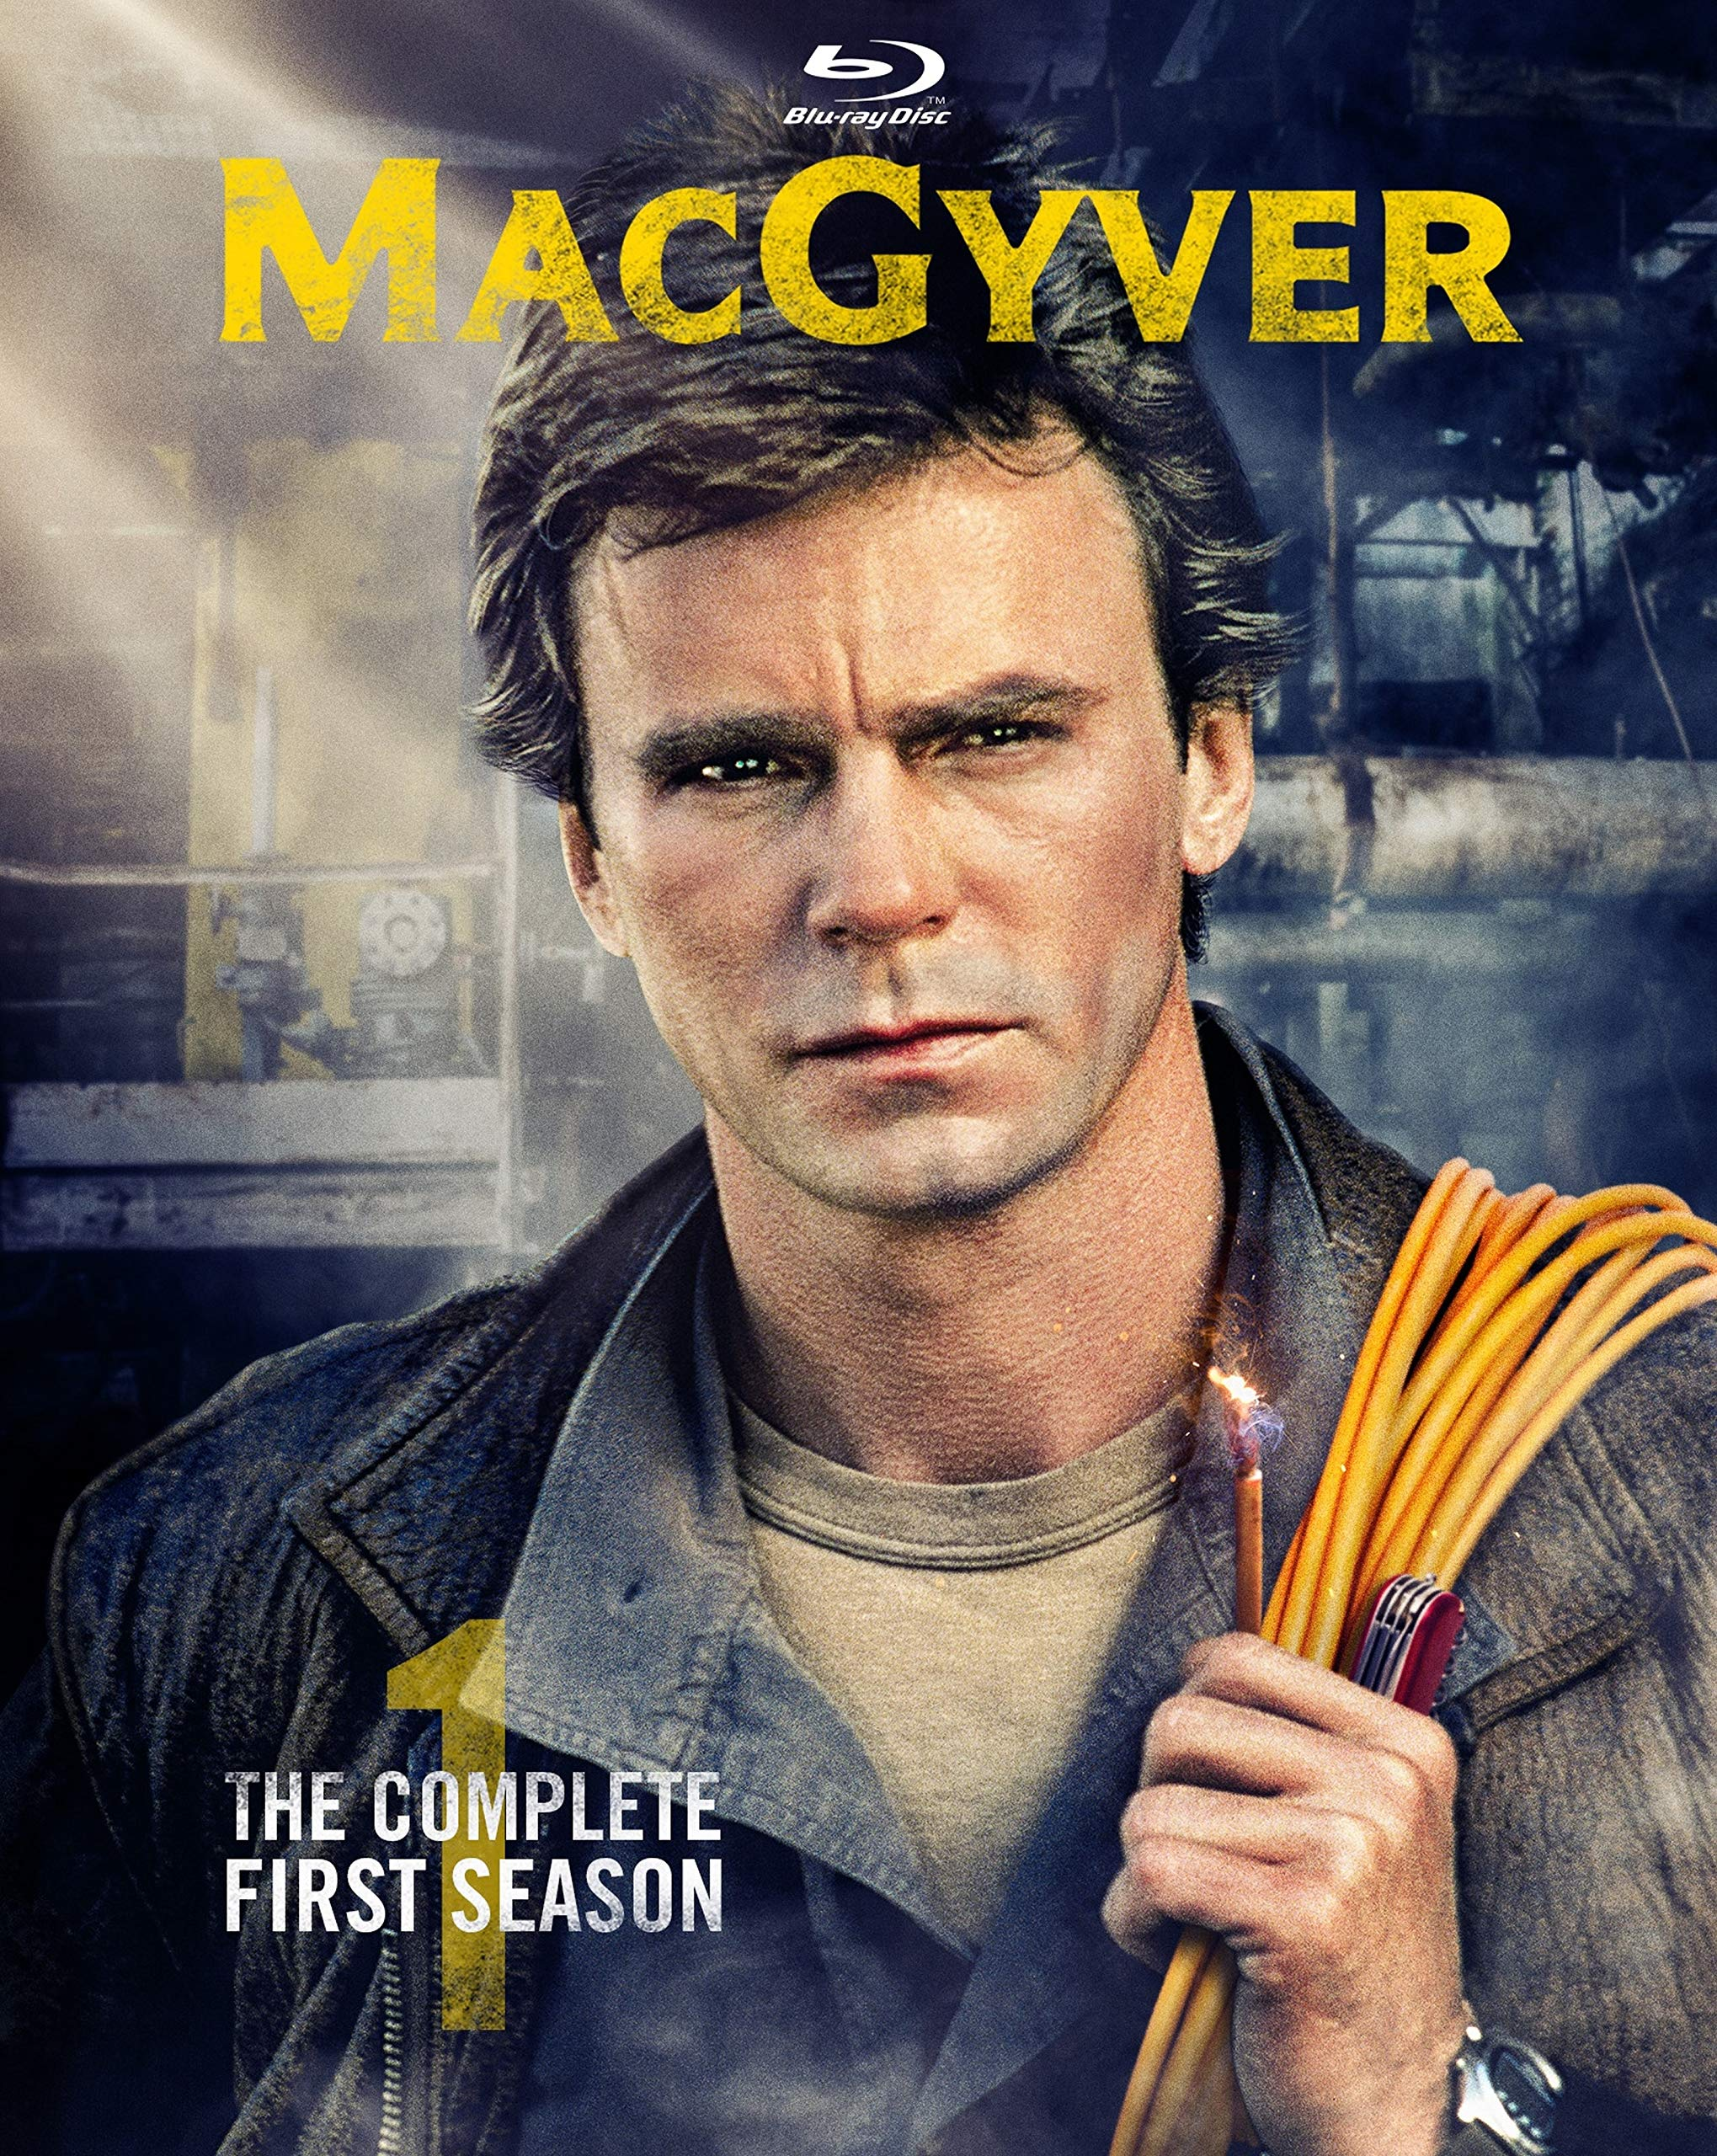 MacGyver:  The Complete First Season [Blu-ray]